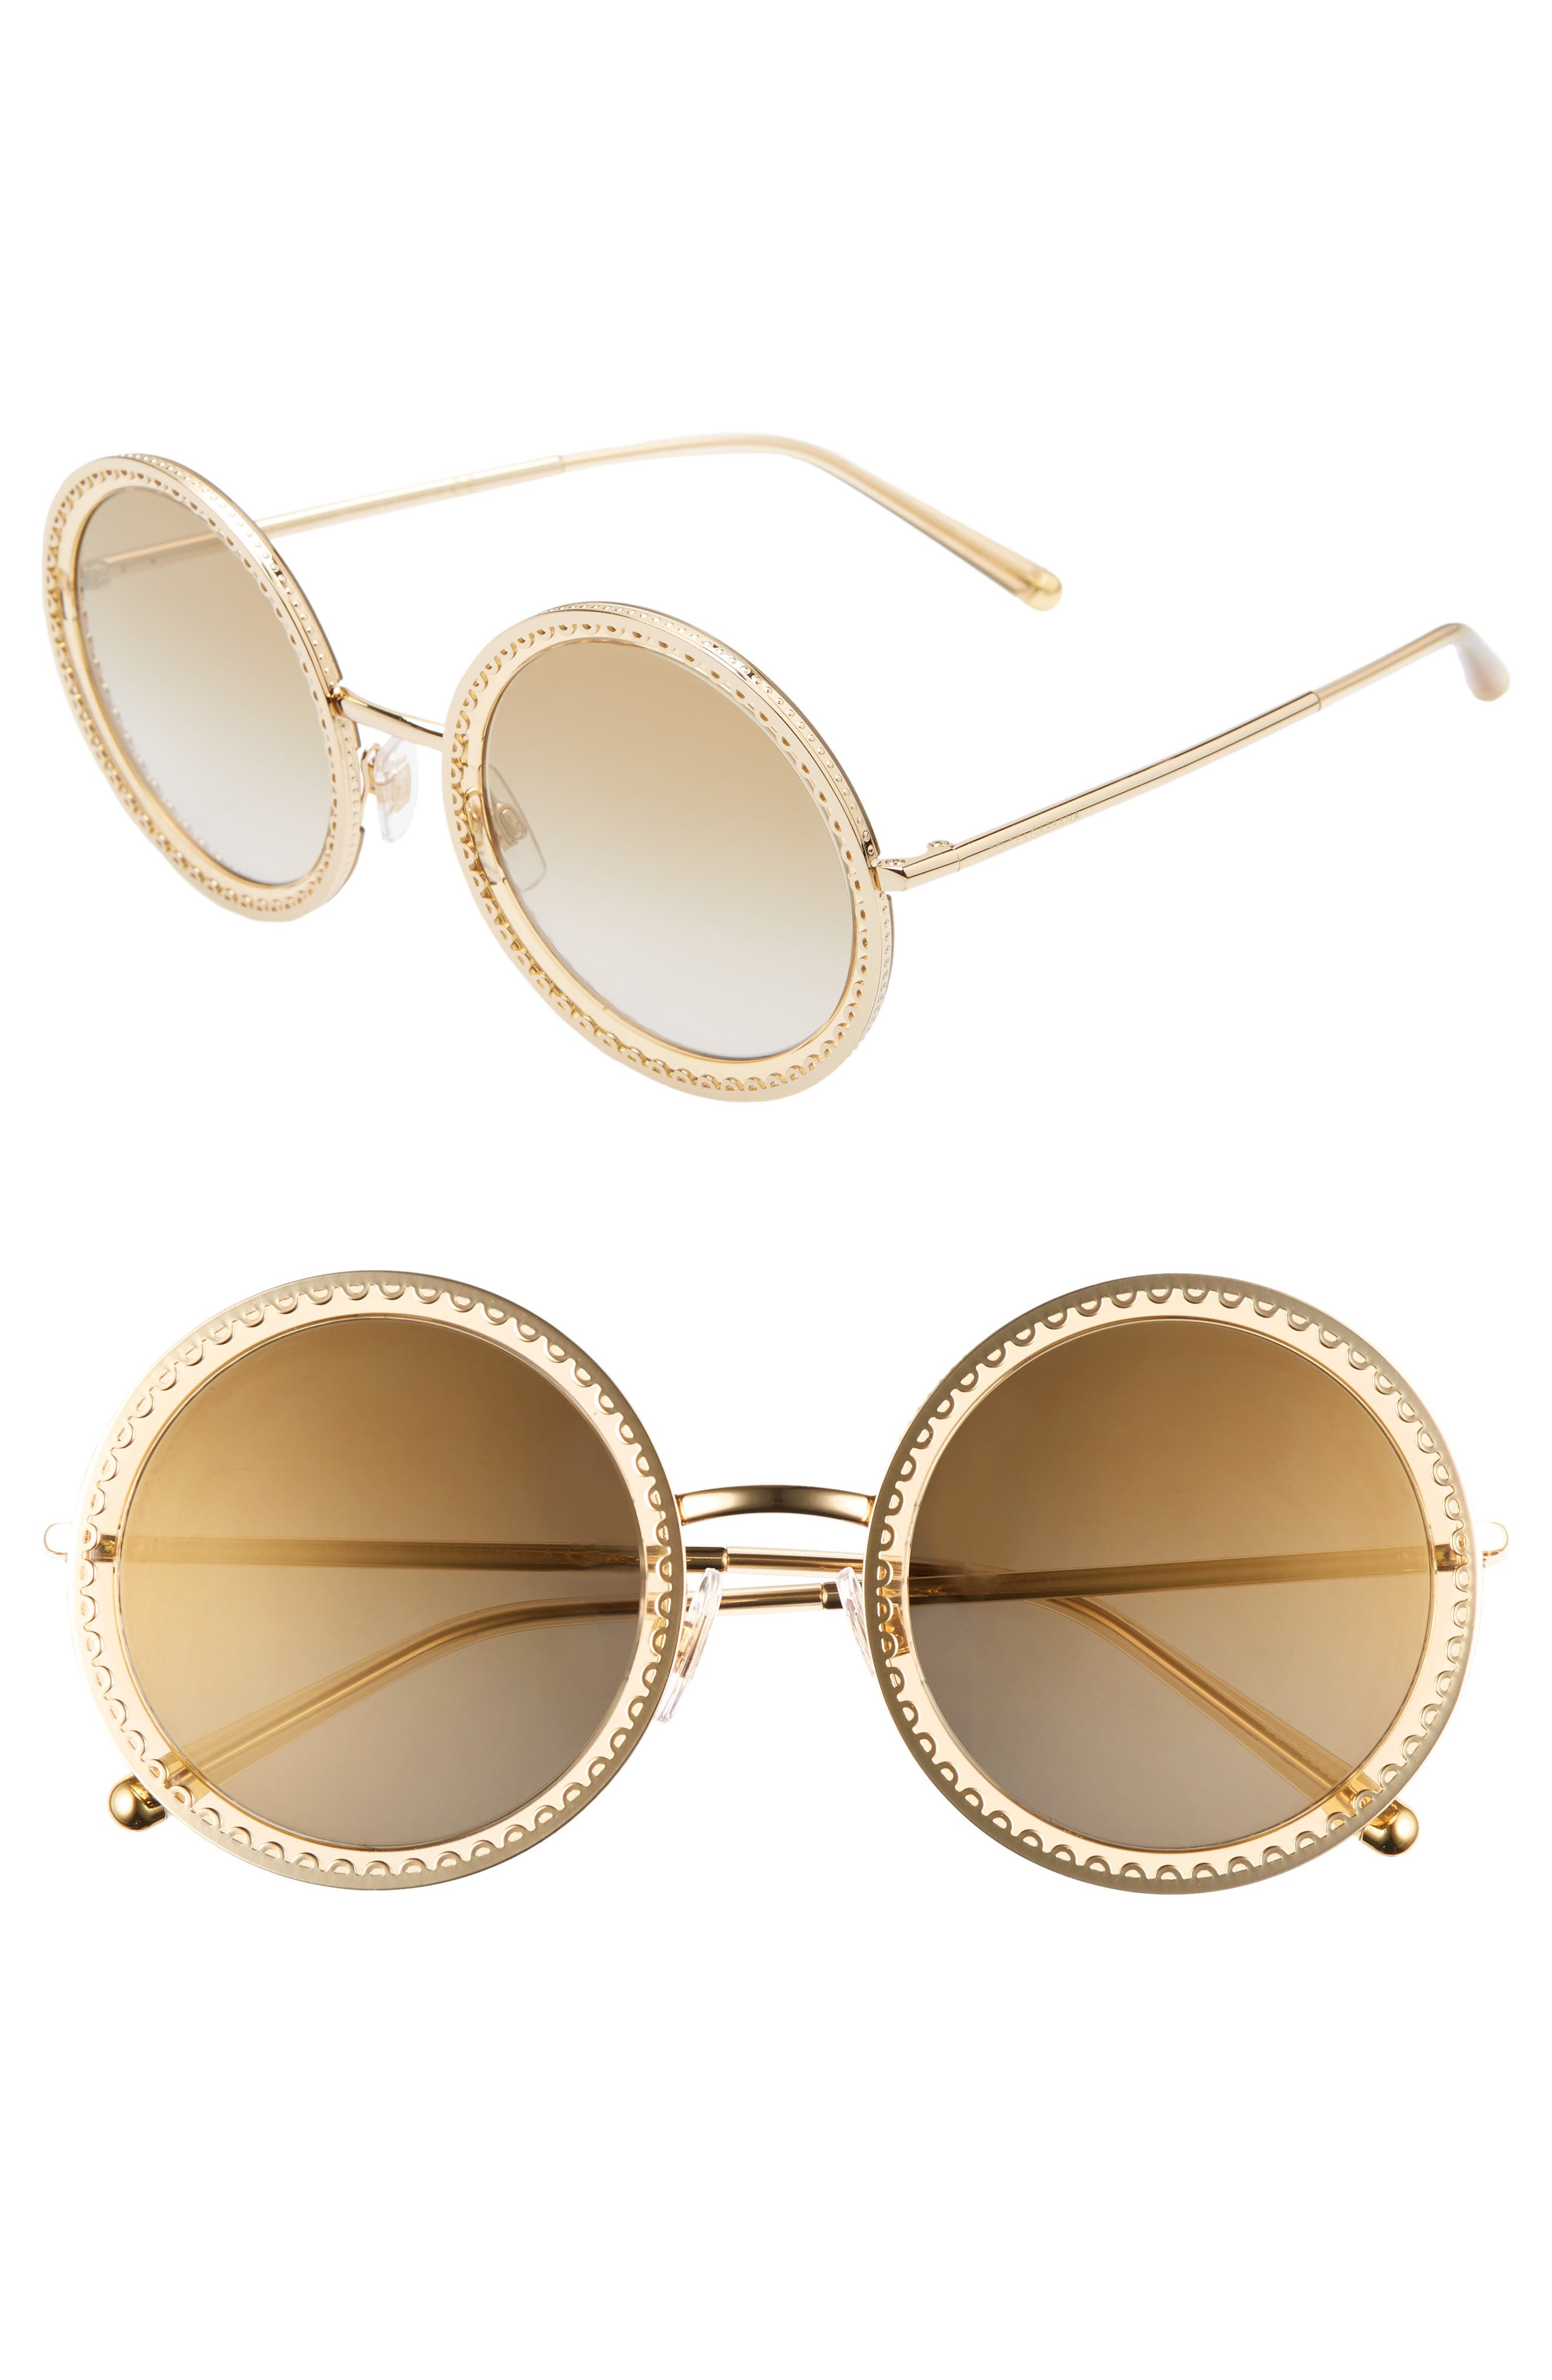 Dolce & gabbana Sacred Heart 5m Gradient Round Sunglasses - Gold Brown Gradient Mirror